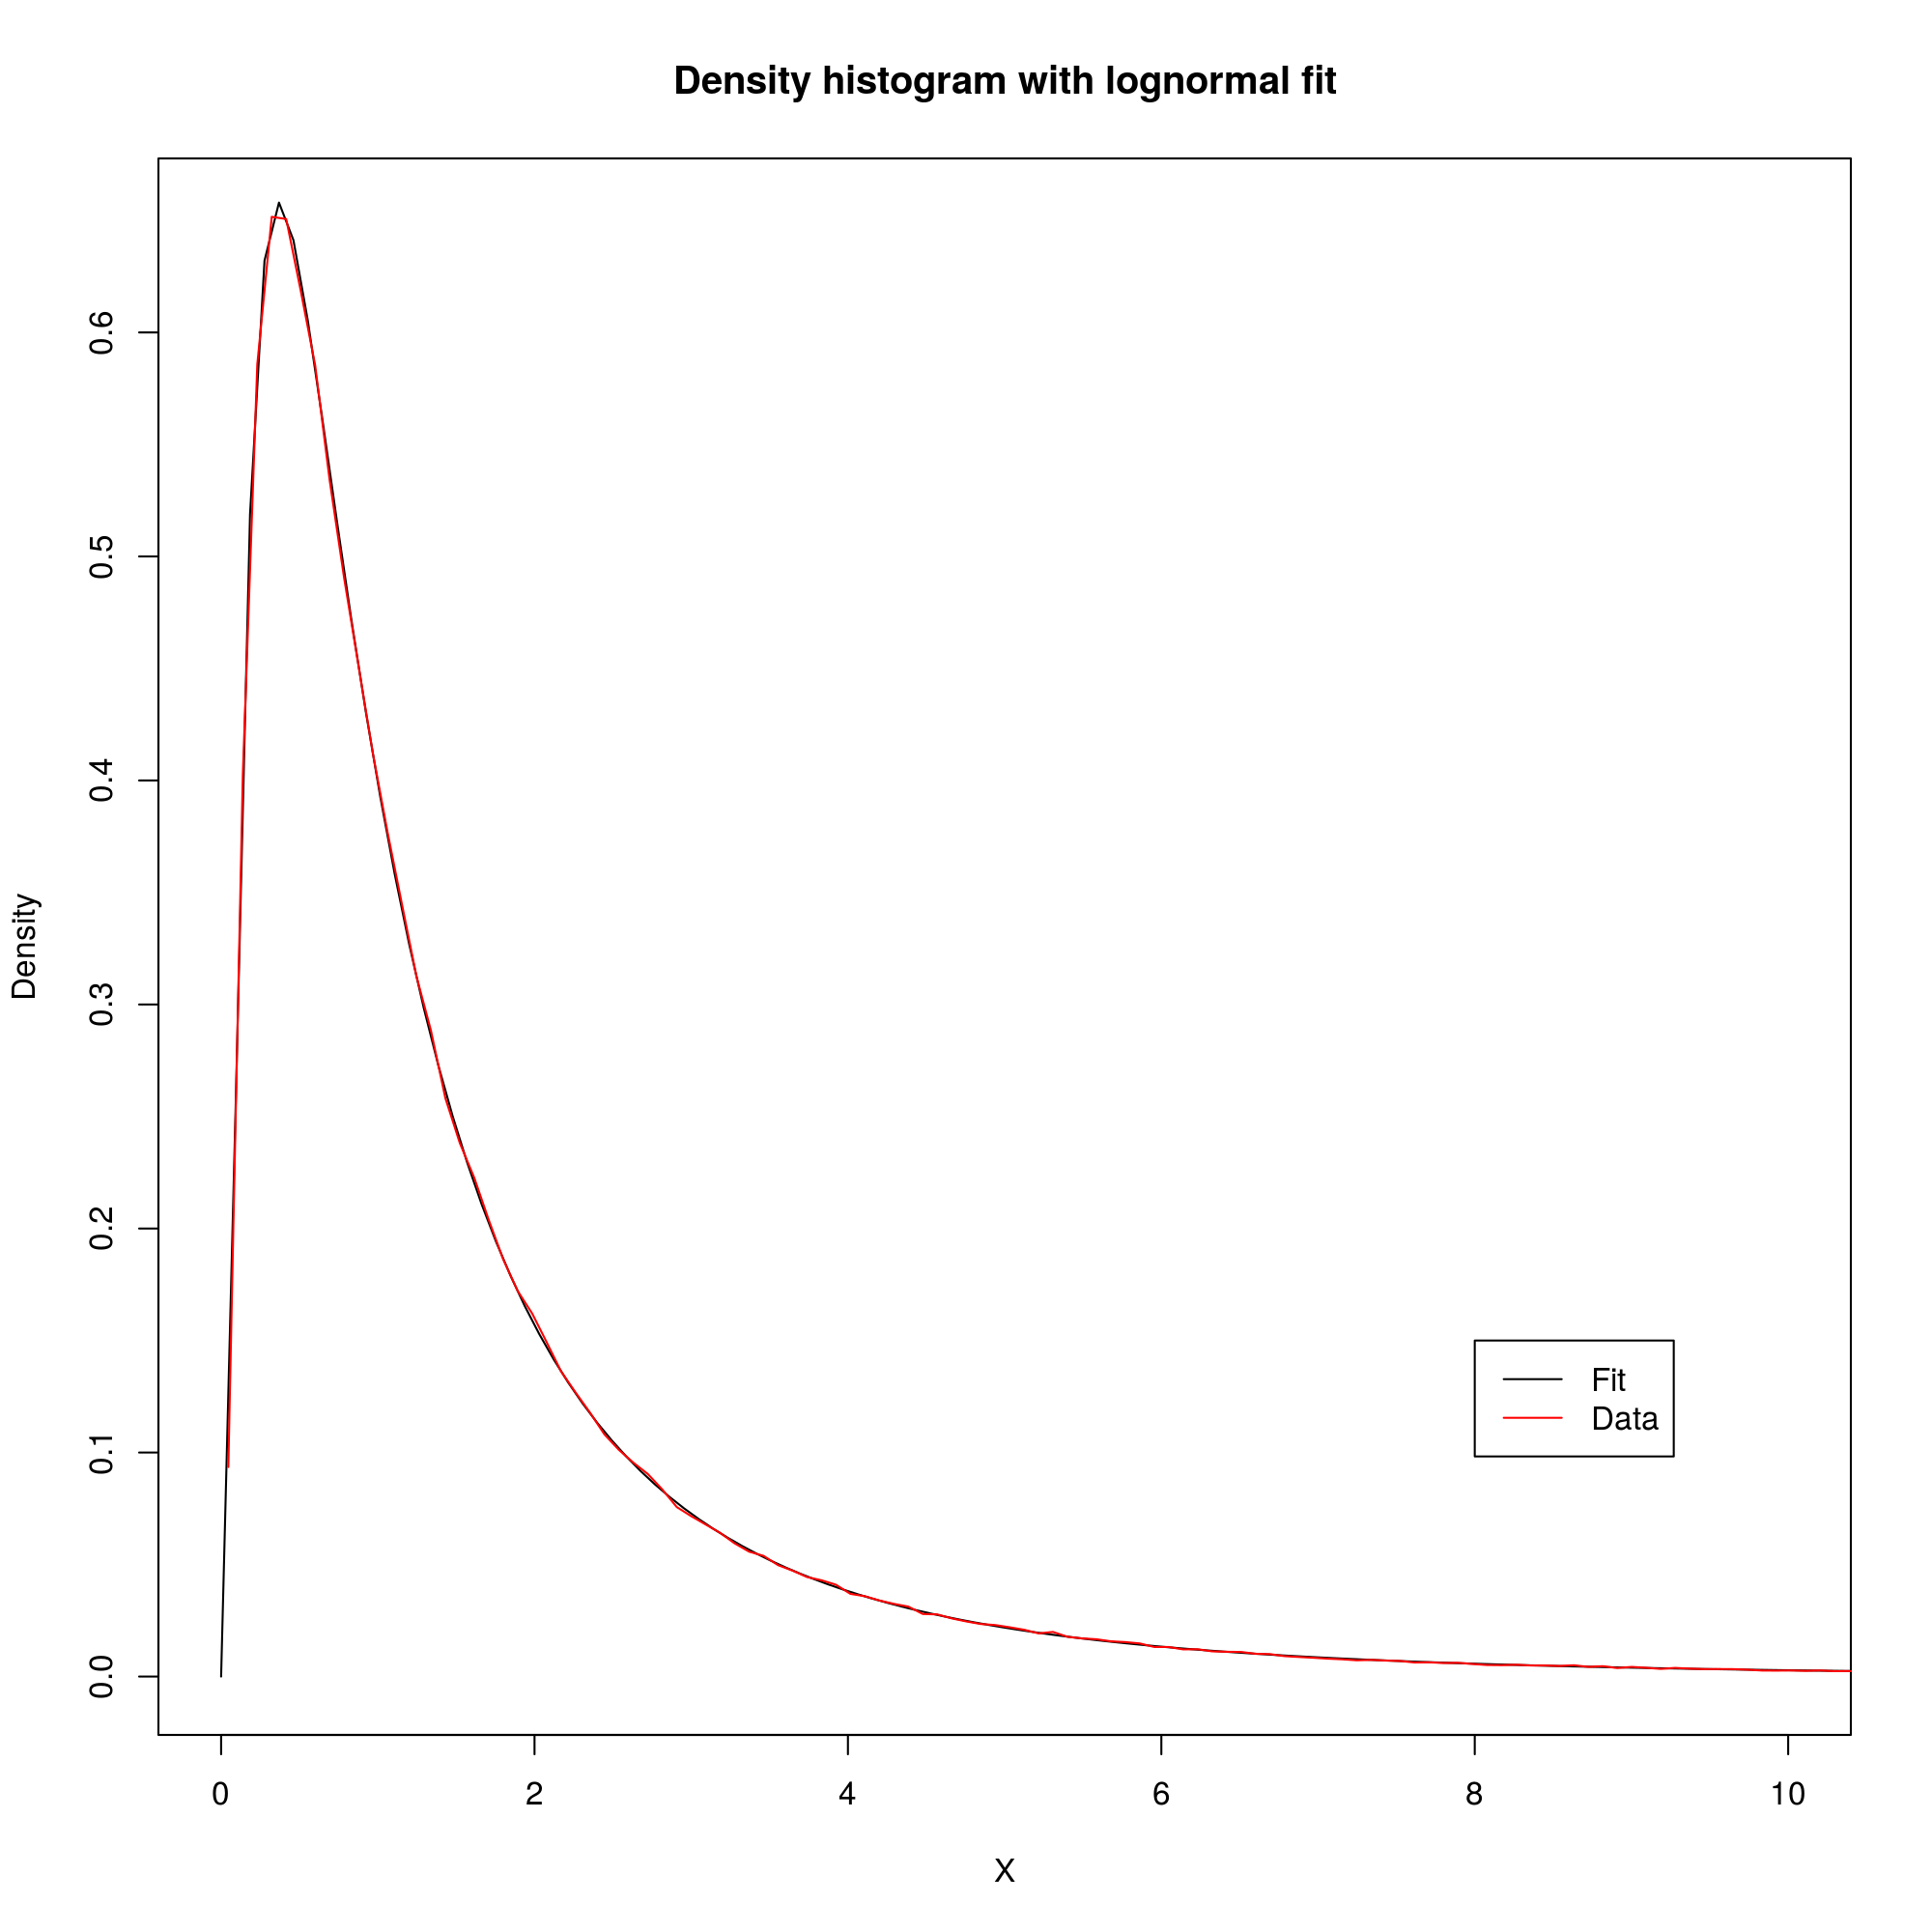 Log-normal fitting and Q-Q plots in R